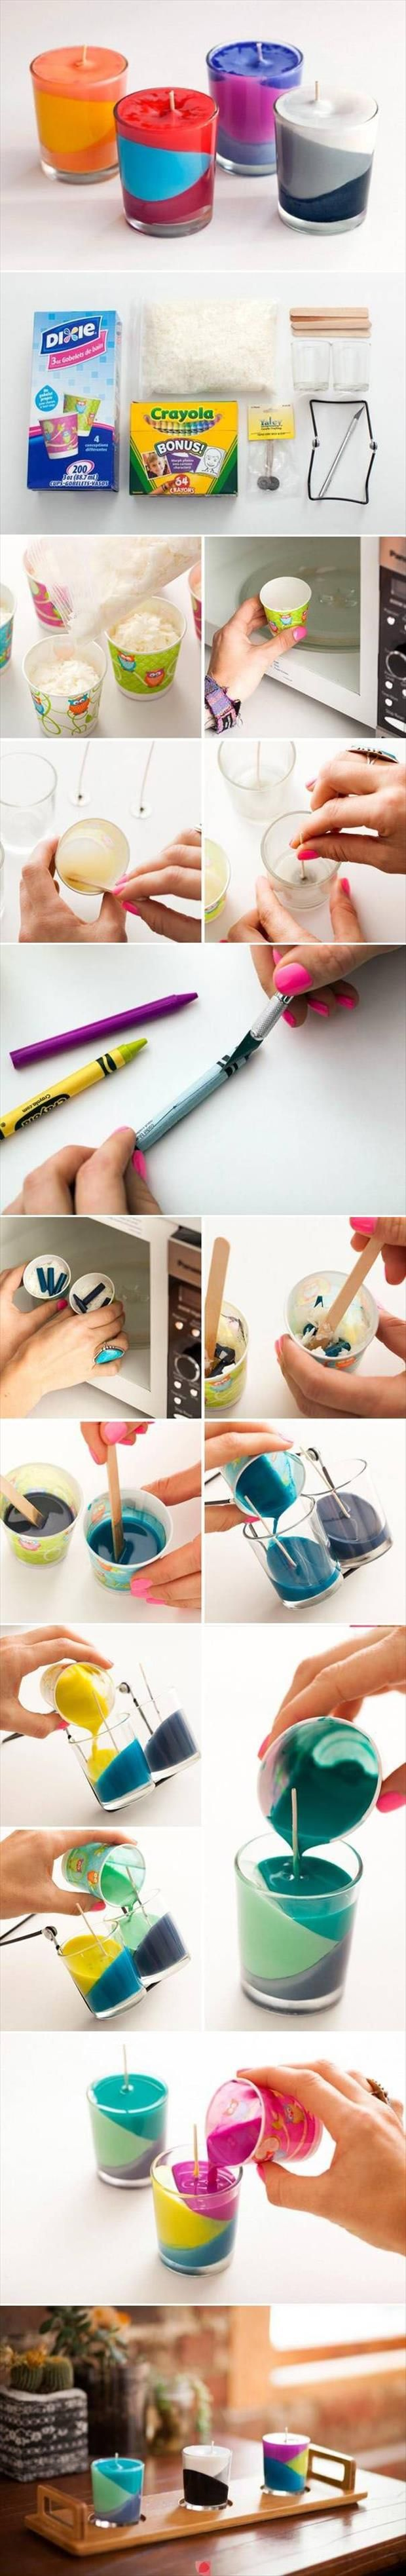 Simple Ideas That Are Borderline Crafty